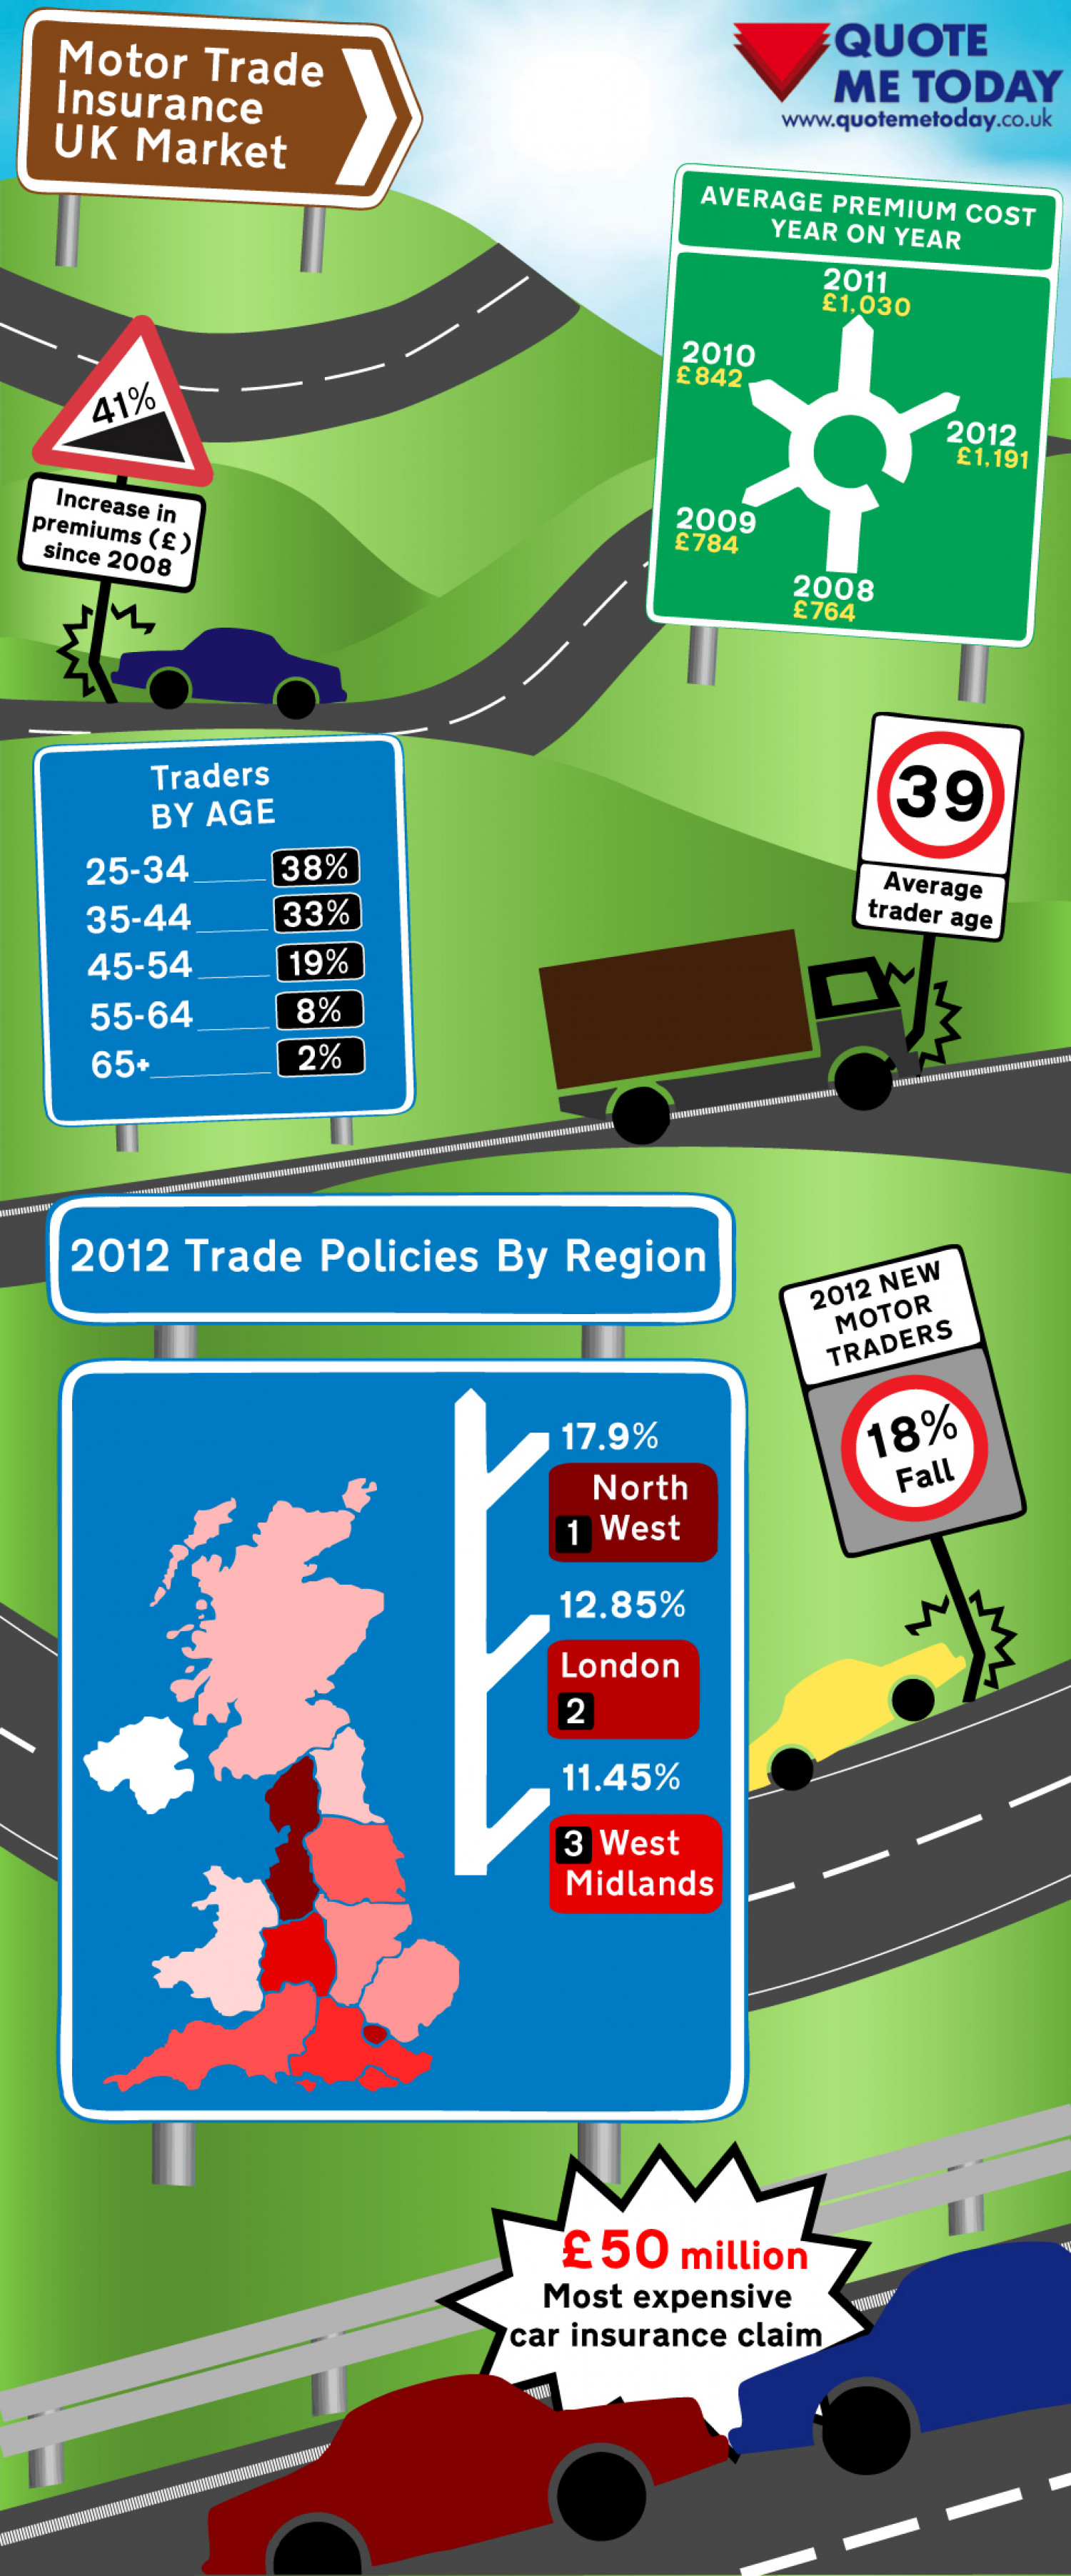 Motor Trade Insurance UK Market Infographic